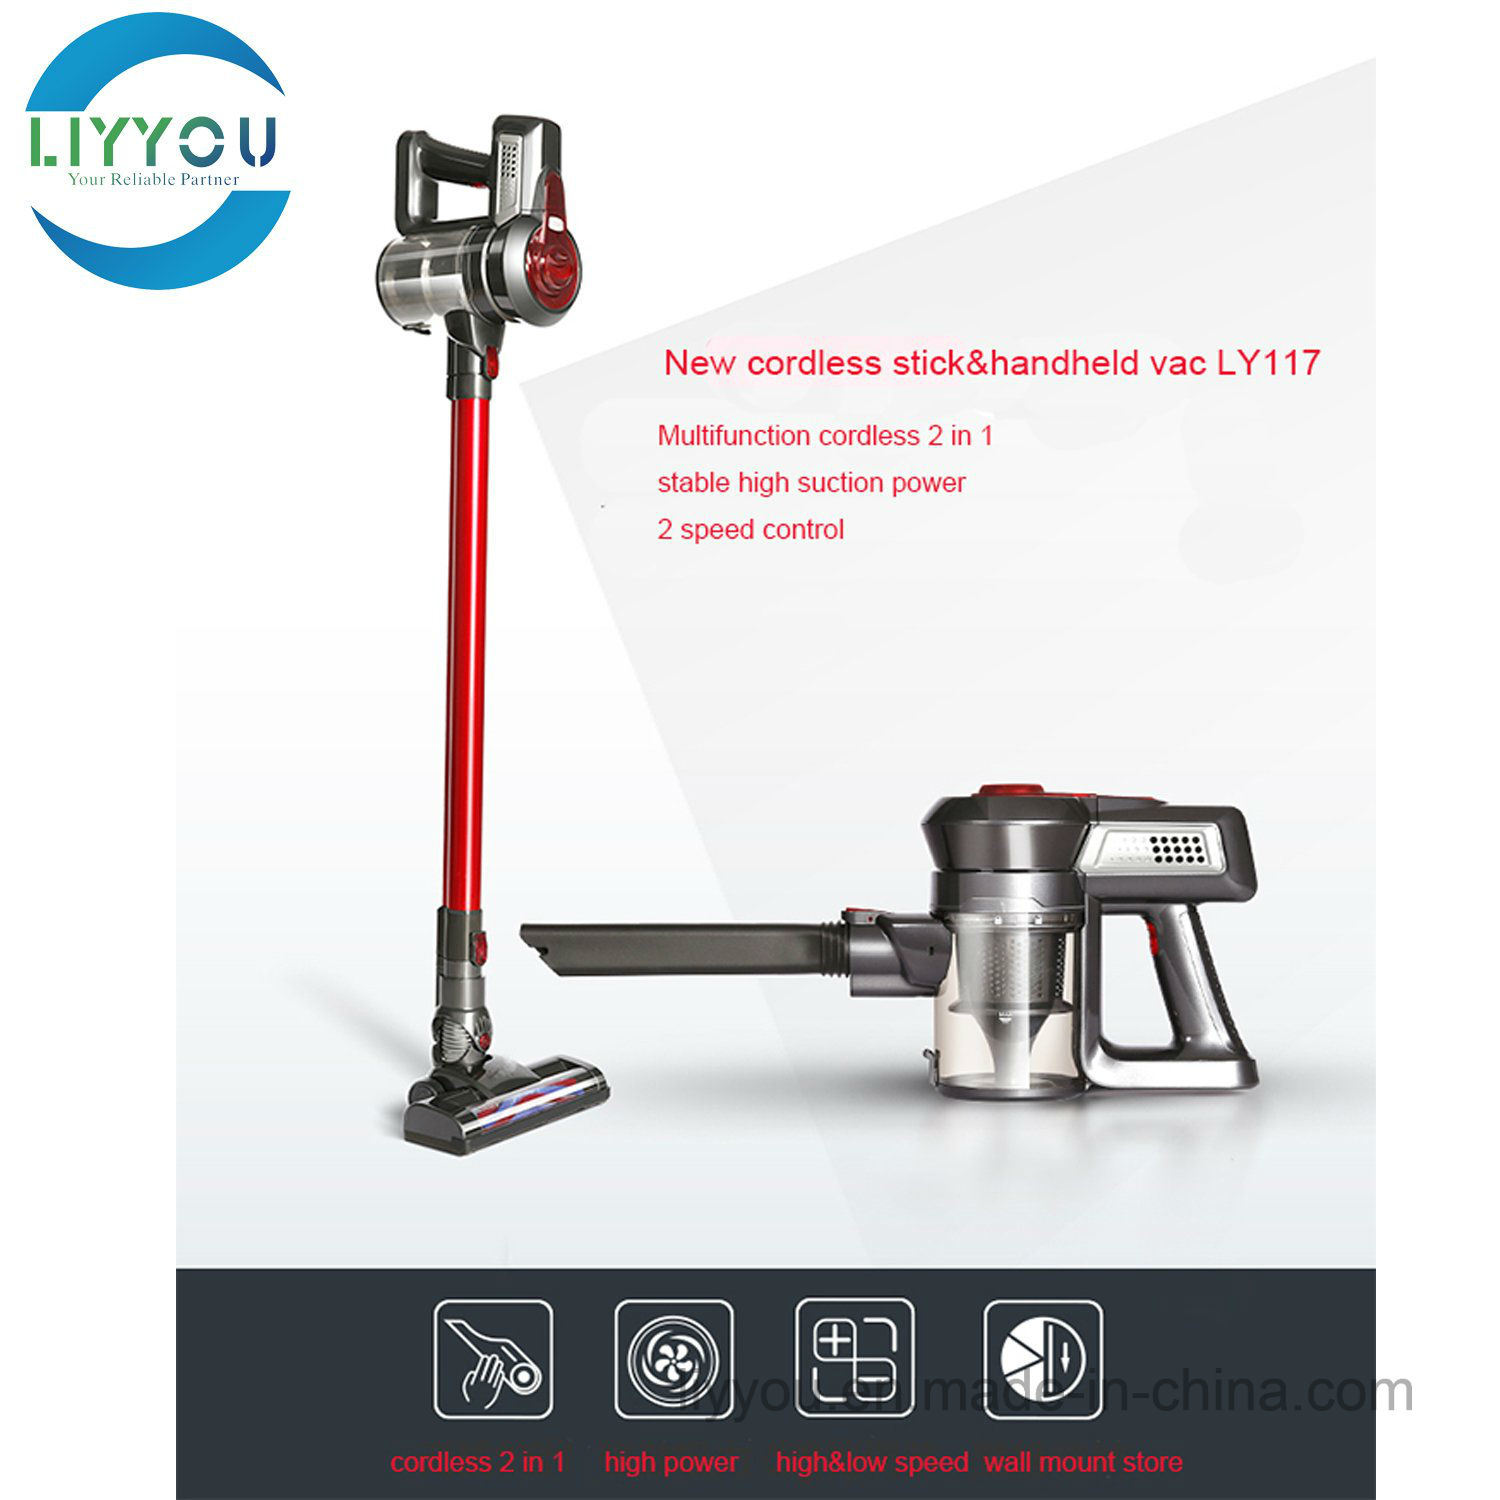 Ly17 Lightweight Handheld Cordless Stick Vacuum Cleaner 2-in-1 for Pet Hair Hard Floor pictures & photos